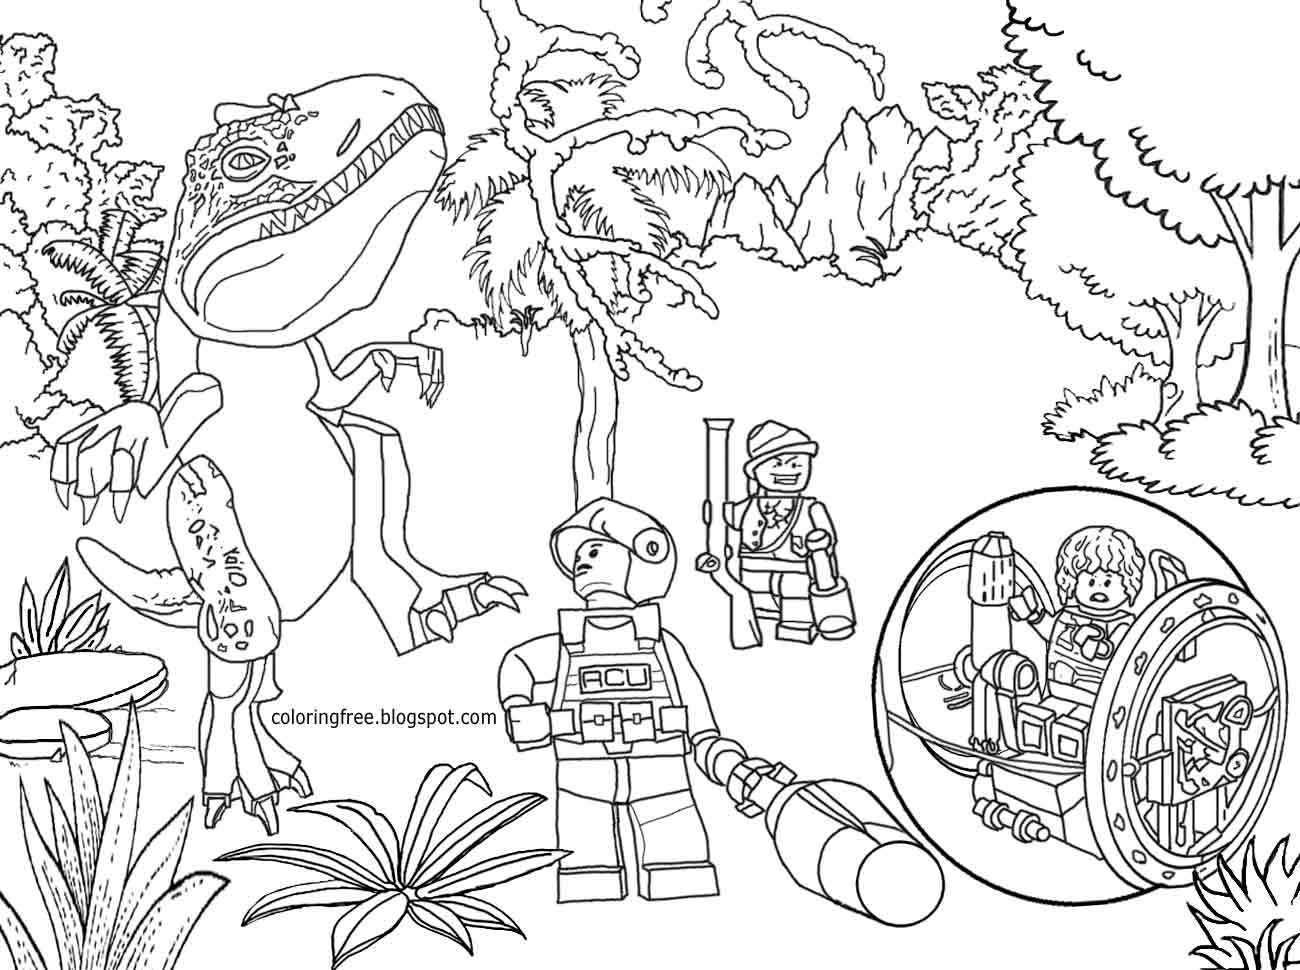 Coloring Pages Lego Jurassic World Game Codes Thet Ps4 All